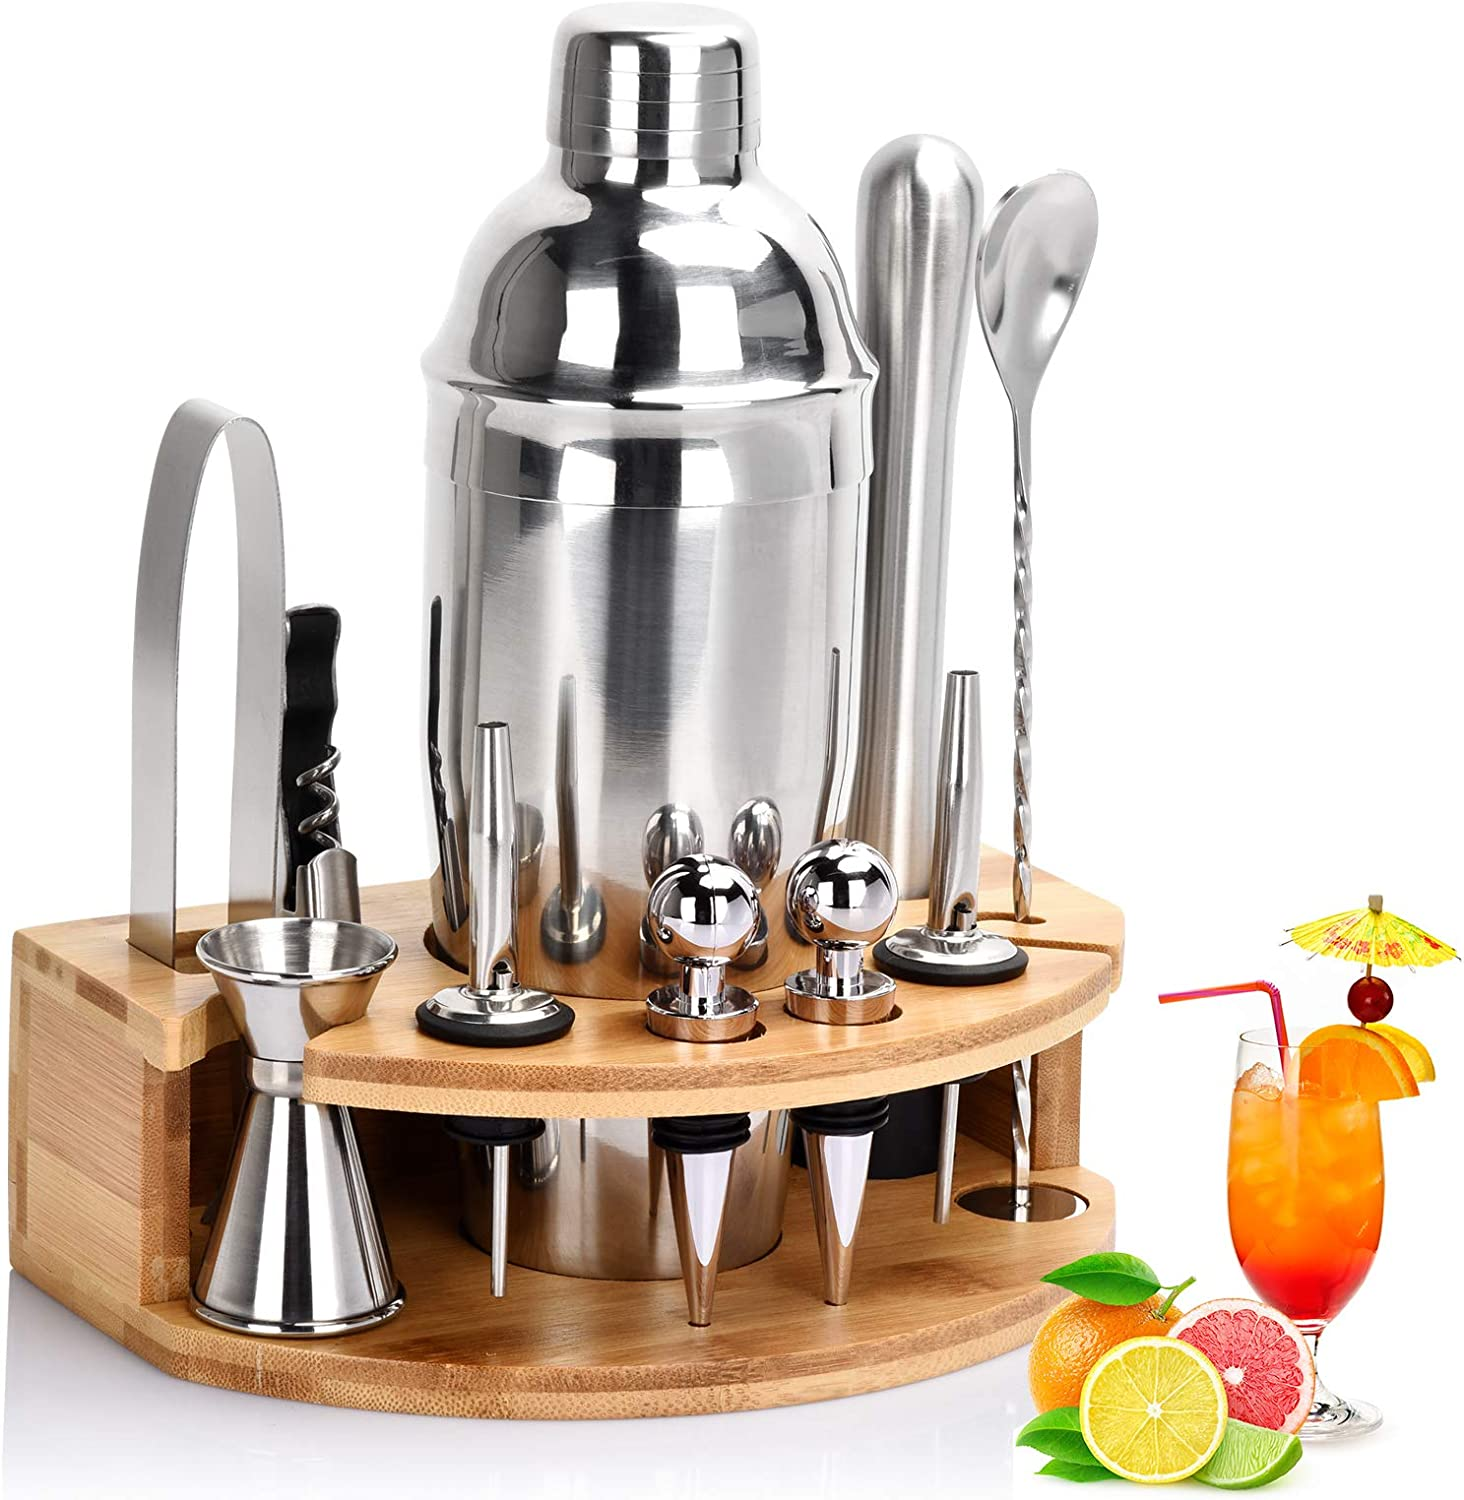 Cocktail Shaker Set, 12 Piece Bartender Kit with Stand, 25 oz Martini Shaker, Stainless Steel Bar Tools, Cocktail Strainer, Double Measuring Jigger, Mixing Spoon (12 PIECE)